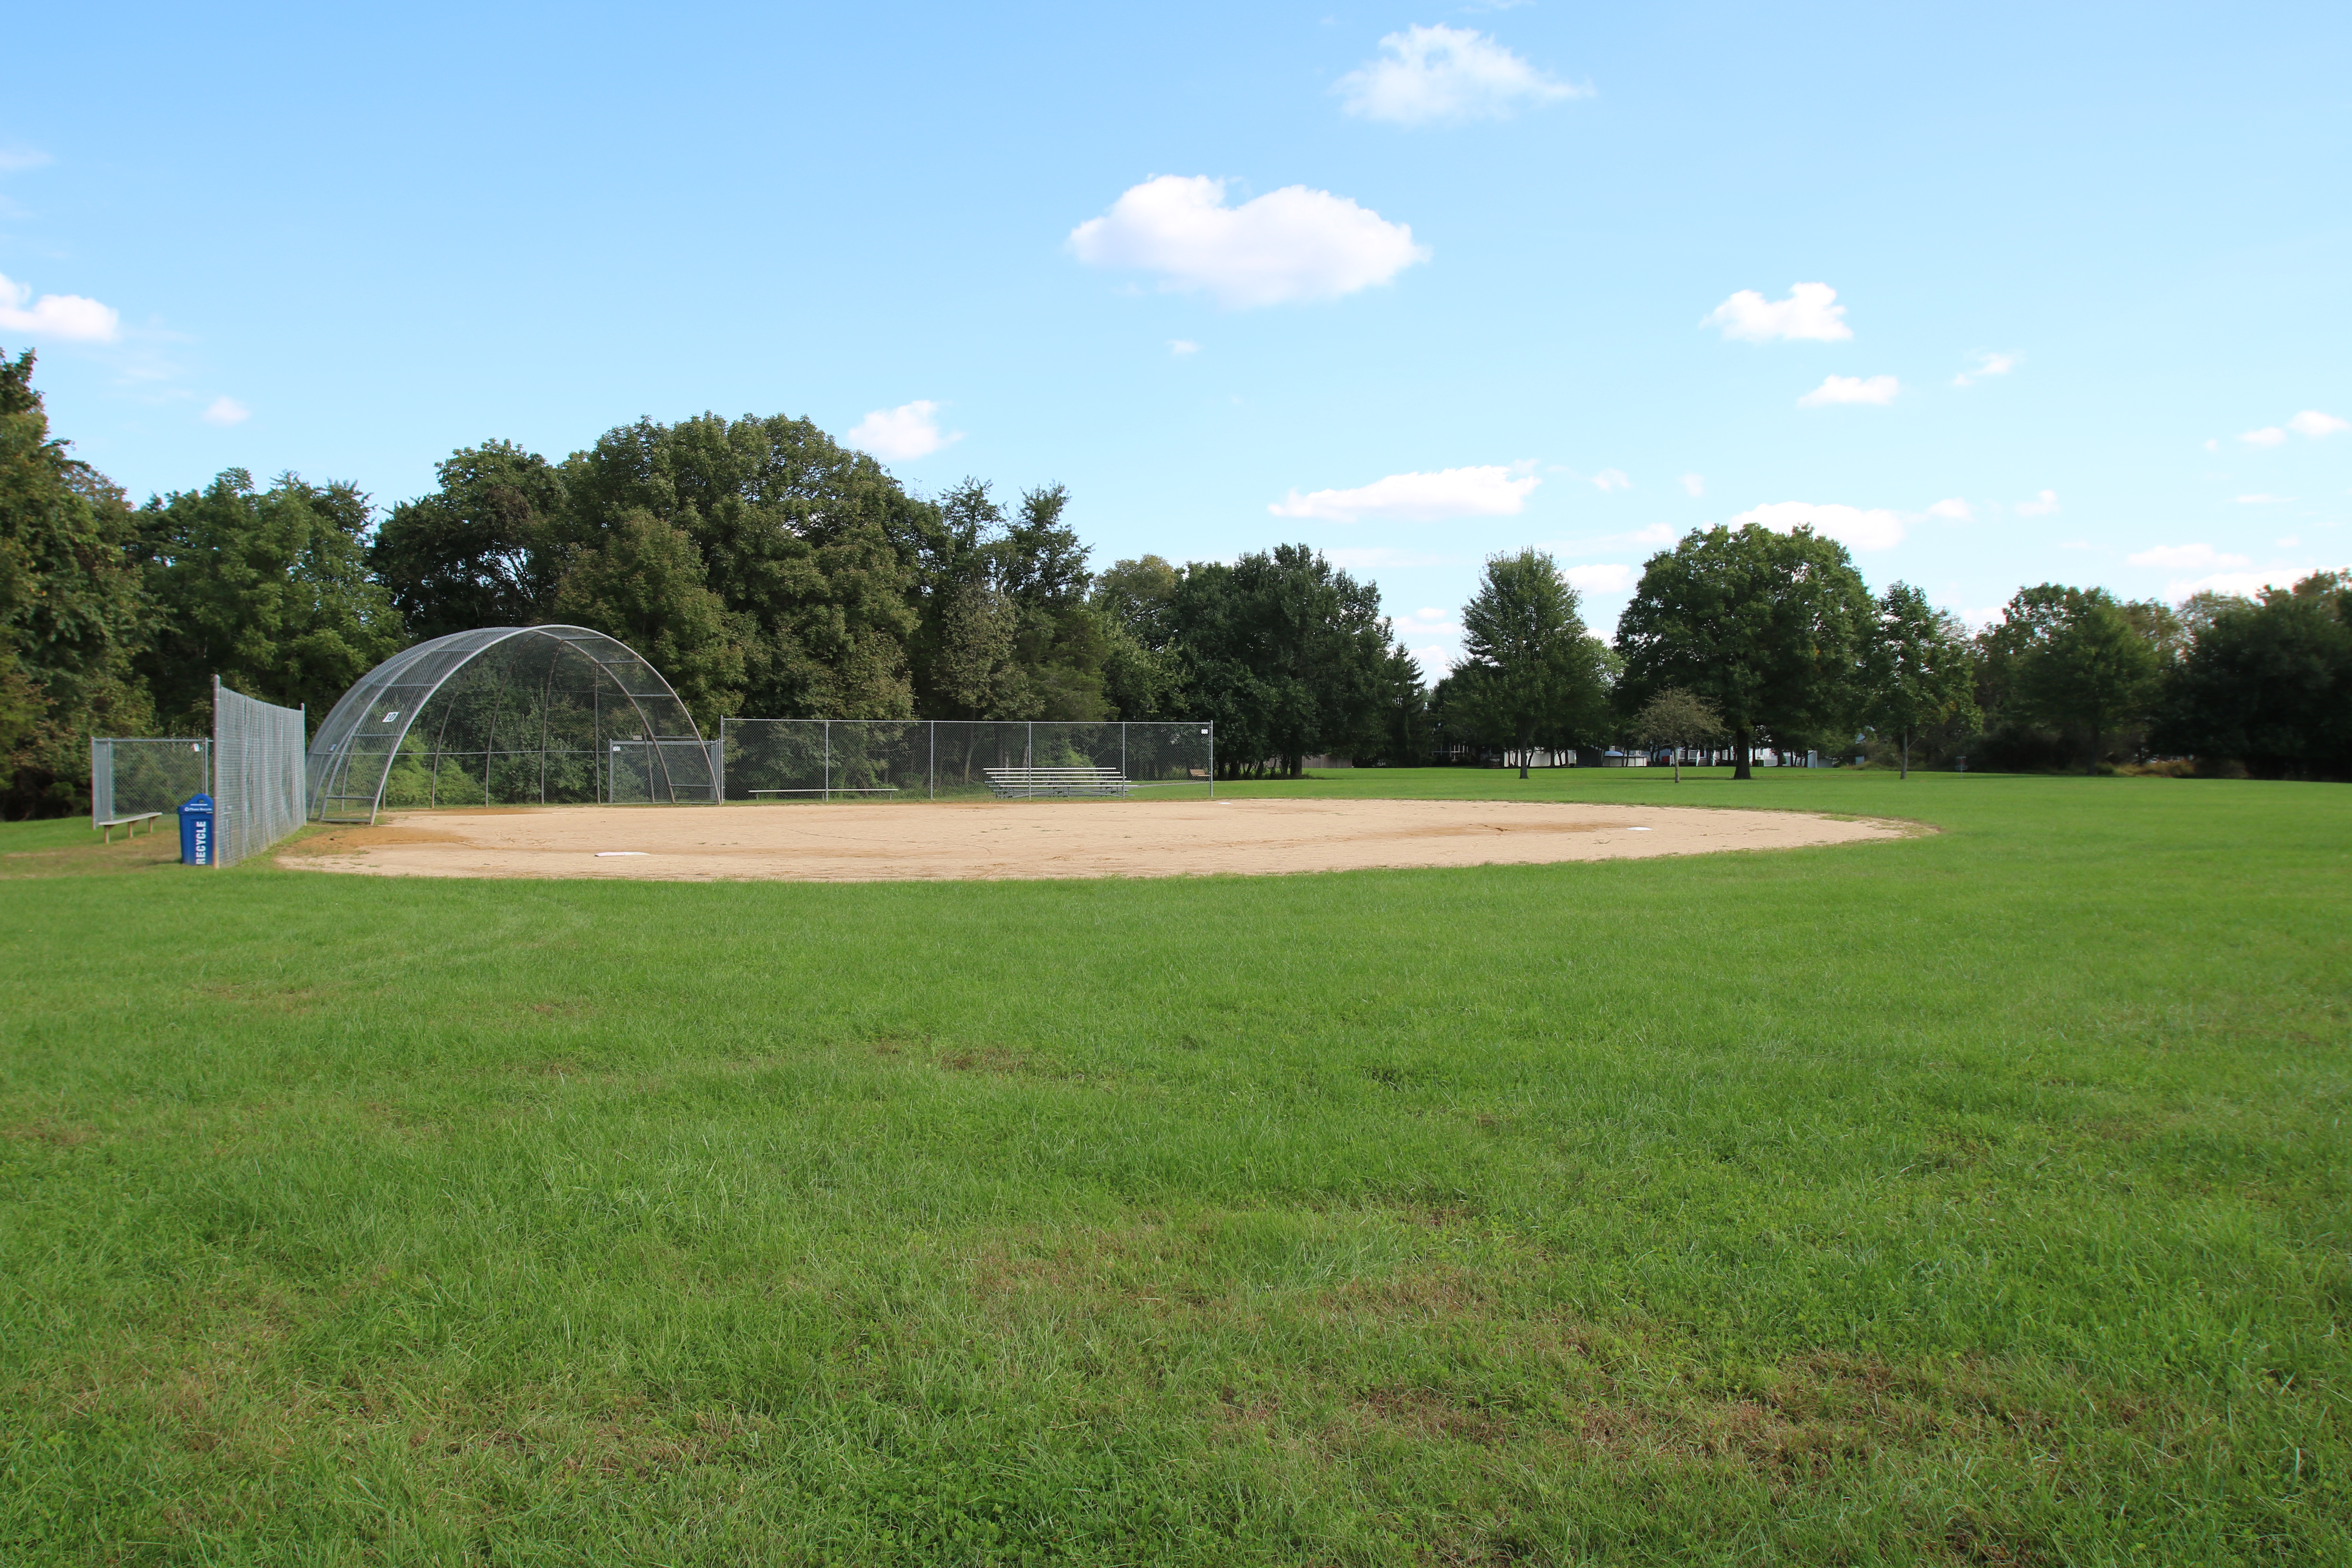 Baseball/softball field in Branchburg, NJ